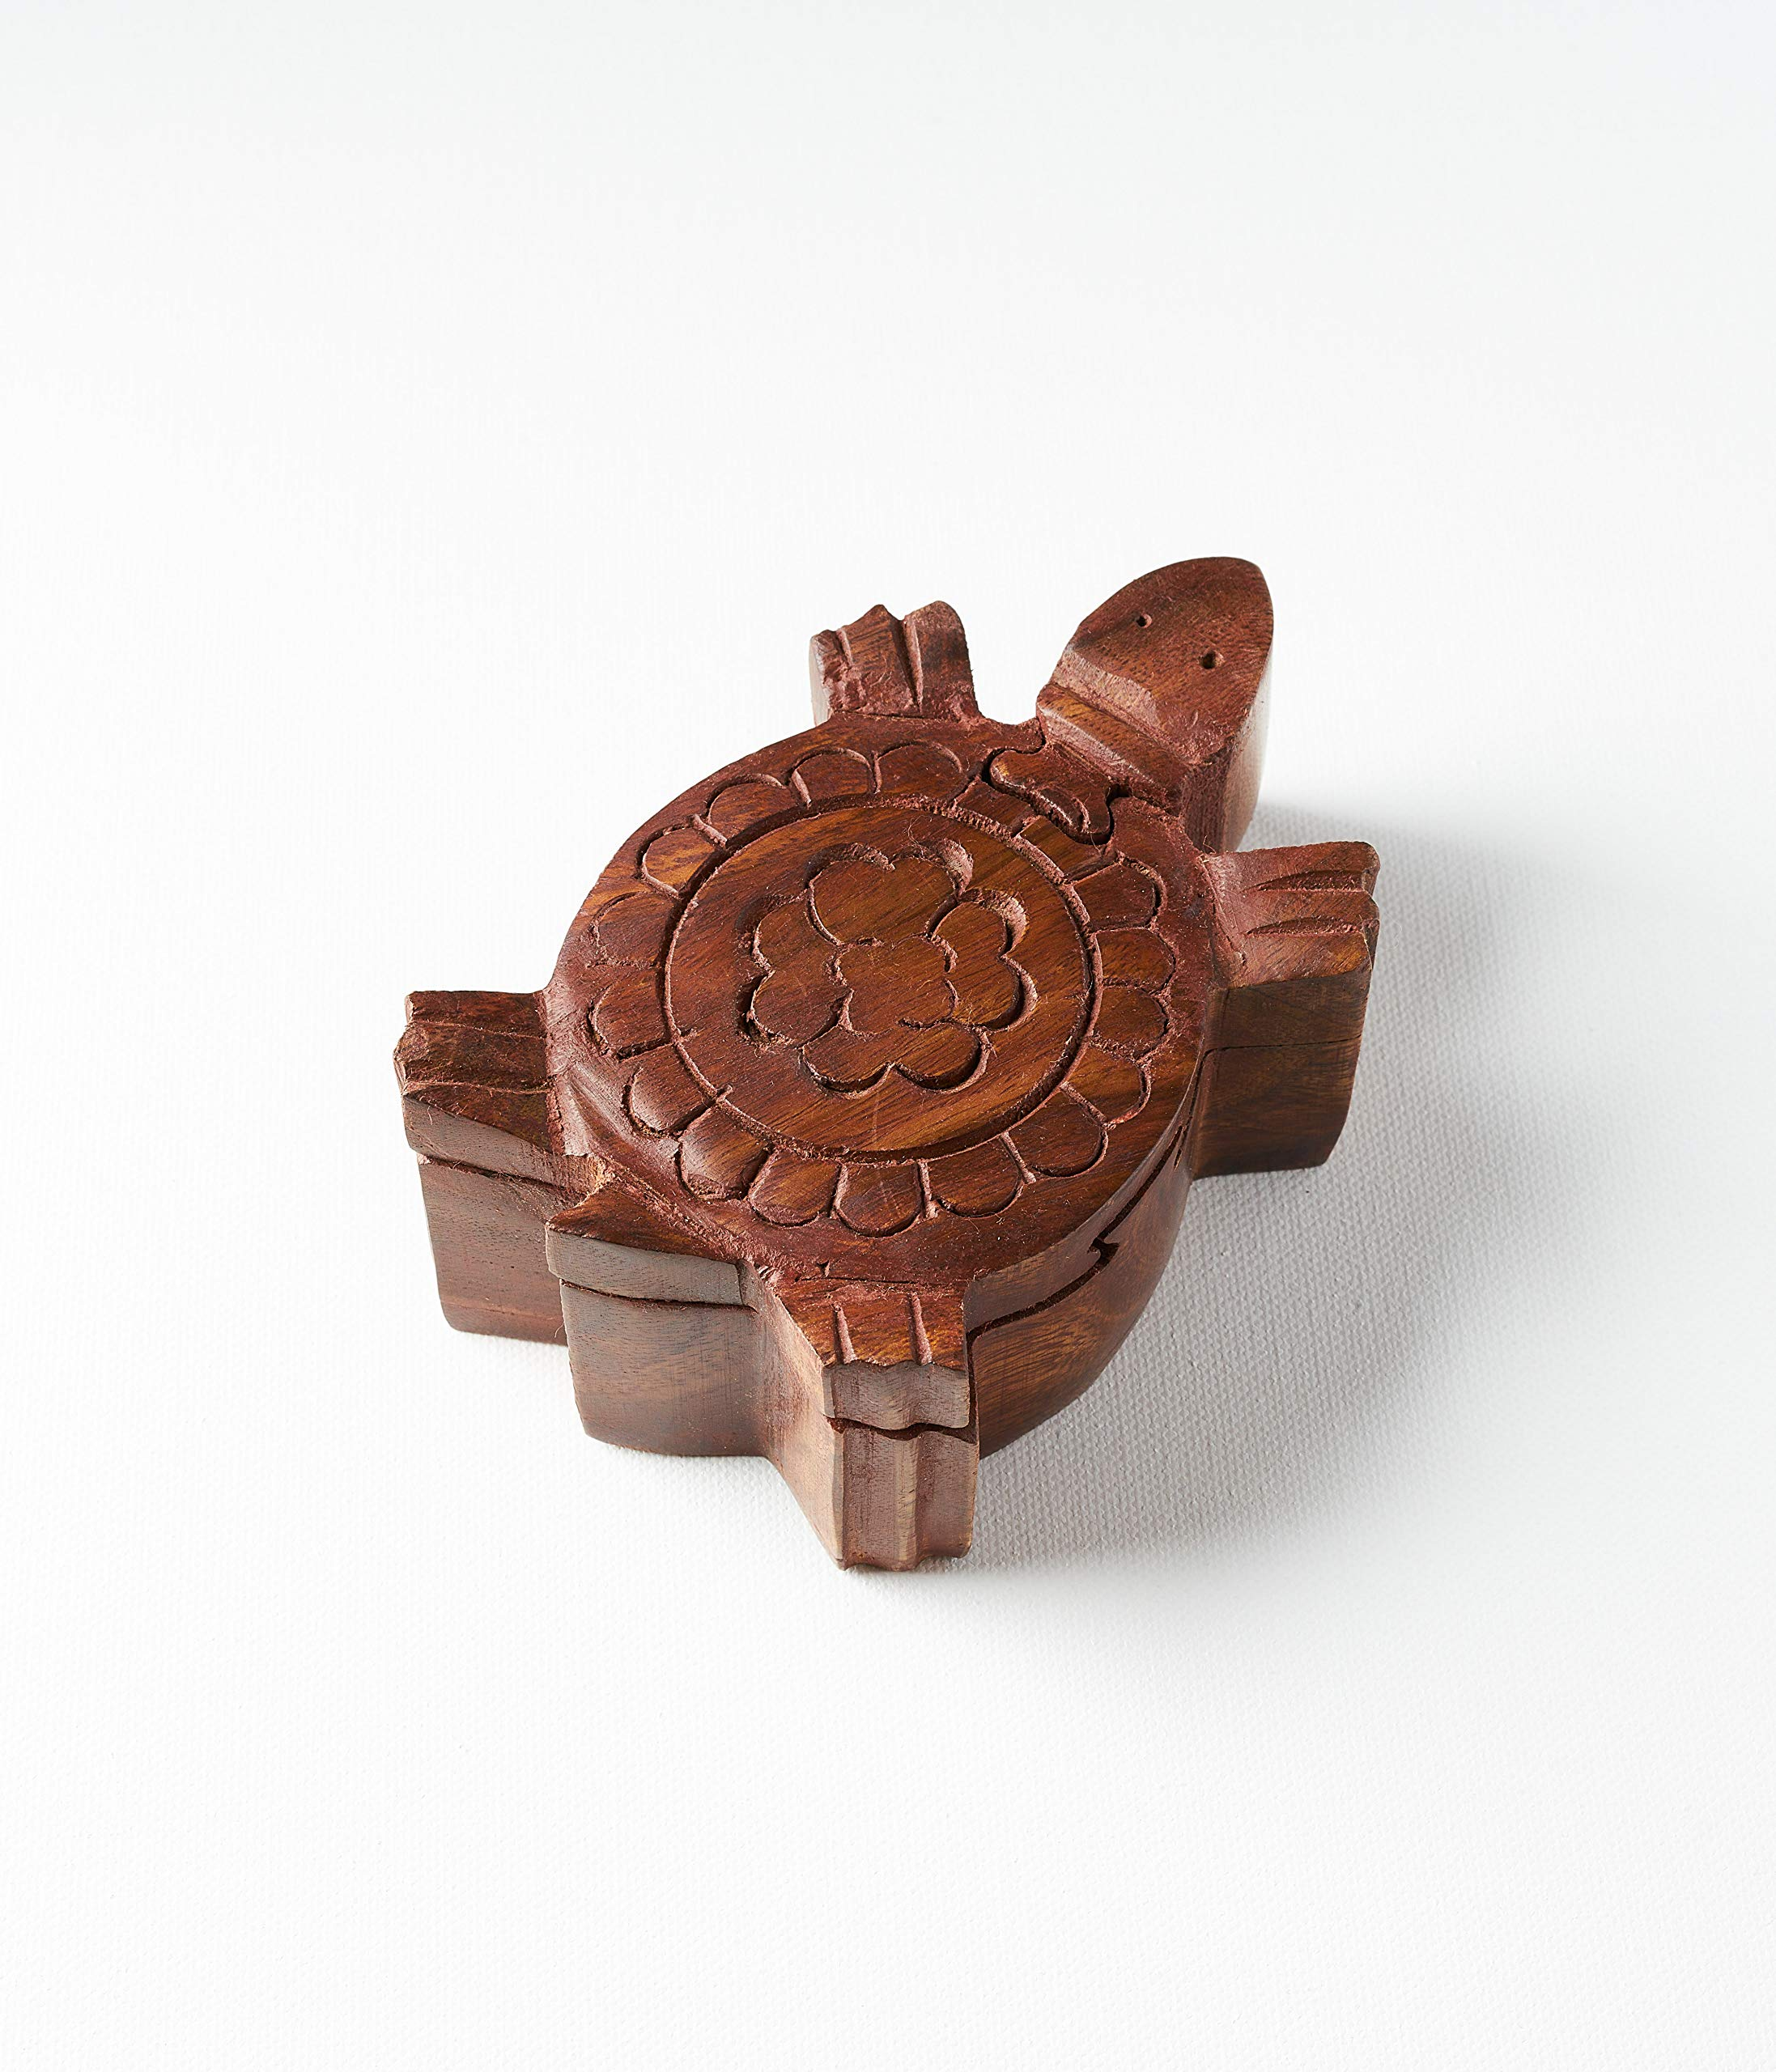 Handmade Wooden Turtle Puzzle Box/Jewelry Box/Stash Box/Brain Teaser with Secret Compartment by Matr Boomie